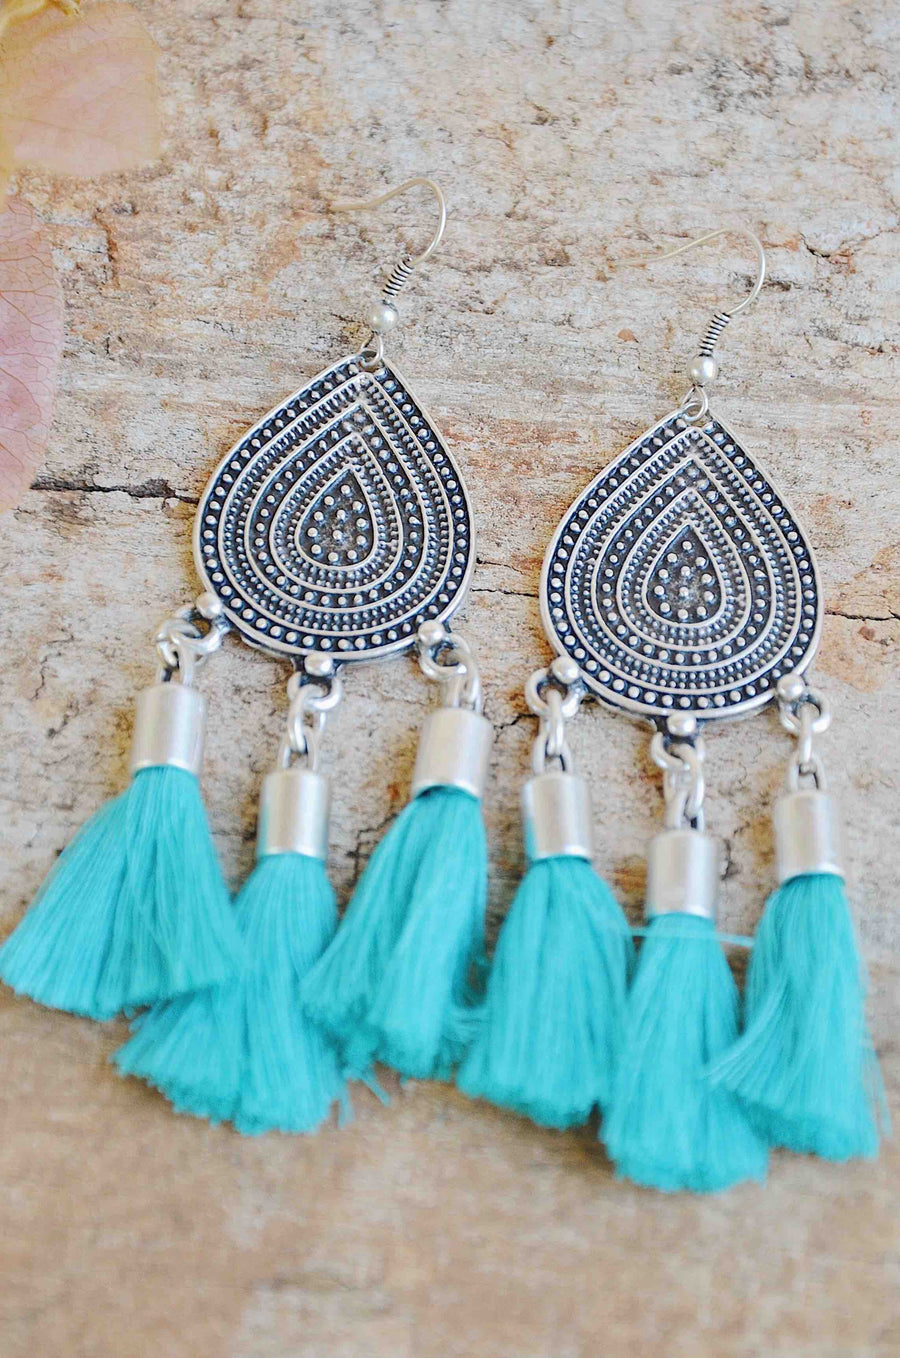 Handmade Turkish Silver Tassel Earrings in Teal